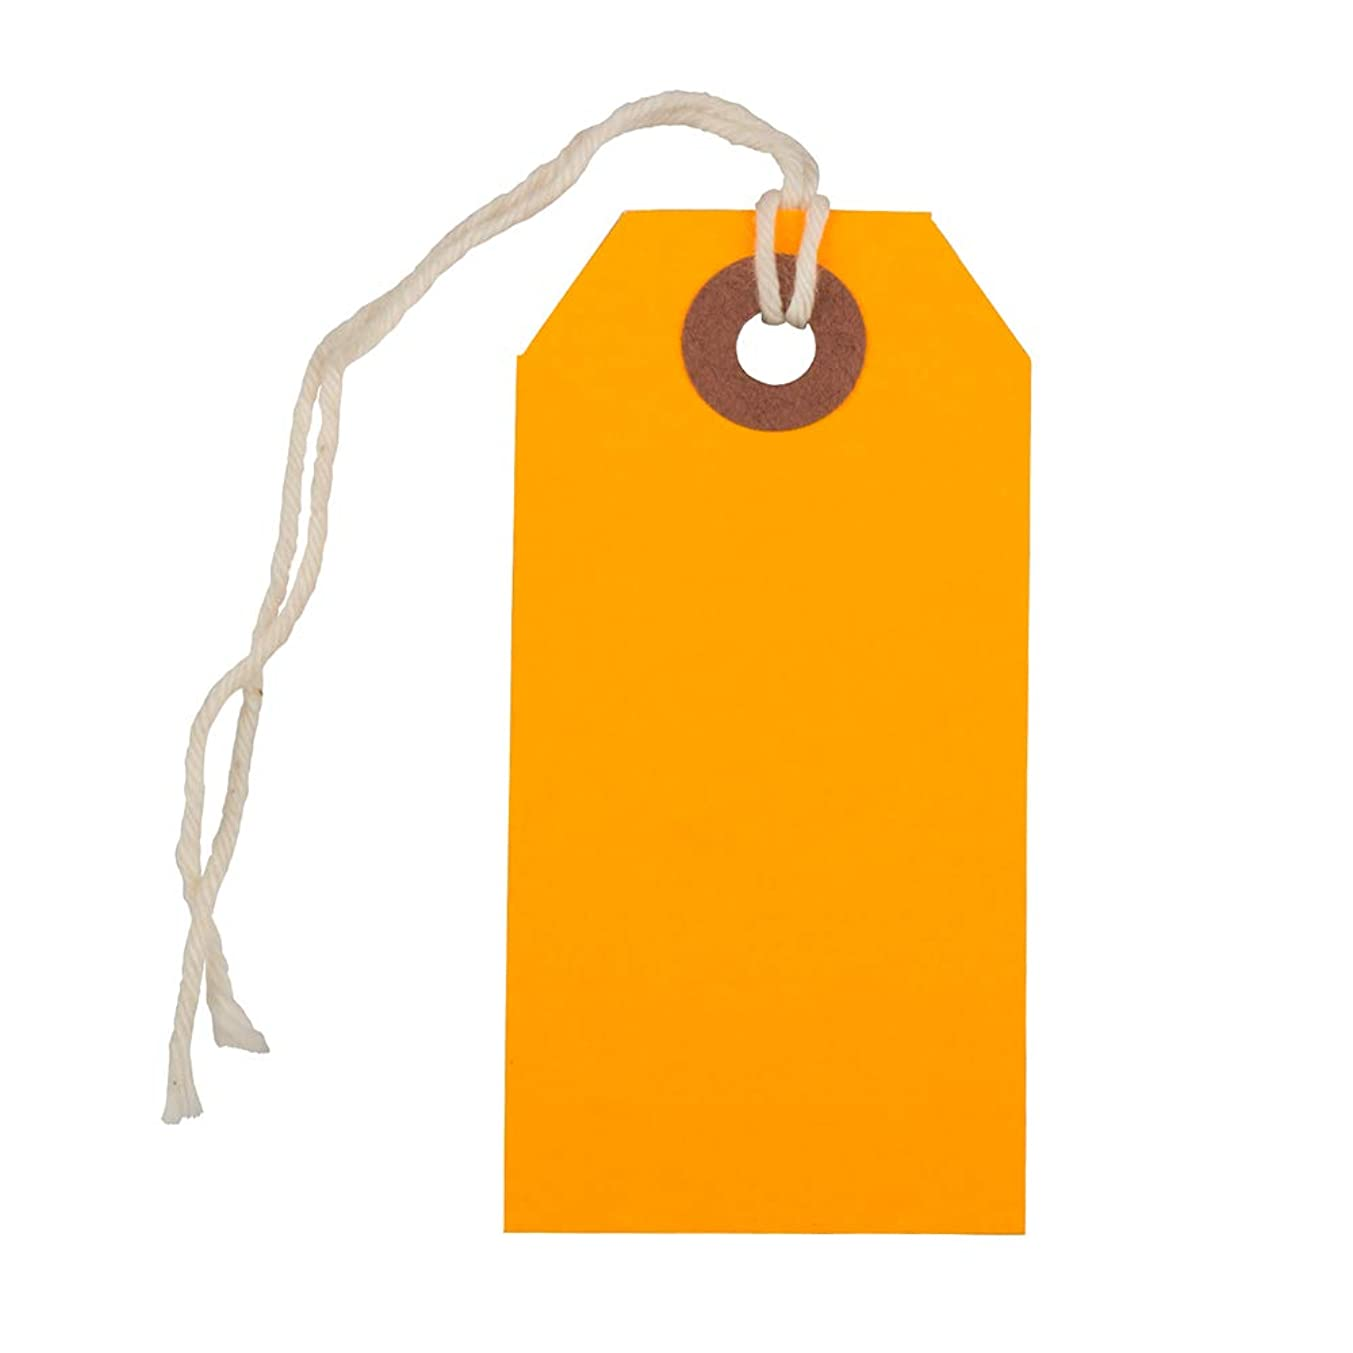 JAM PAPER Gift Tags with String - Small - 3 1/4 x 1 5/8 - Neon Orange - Bulk 100/Pack